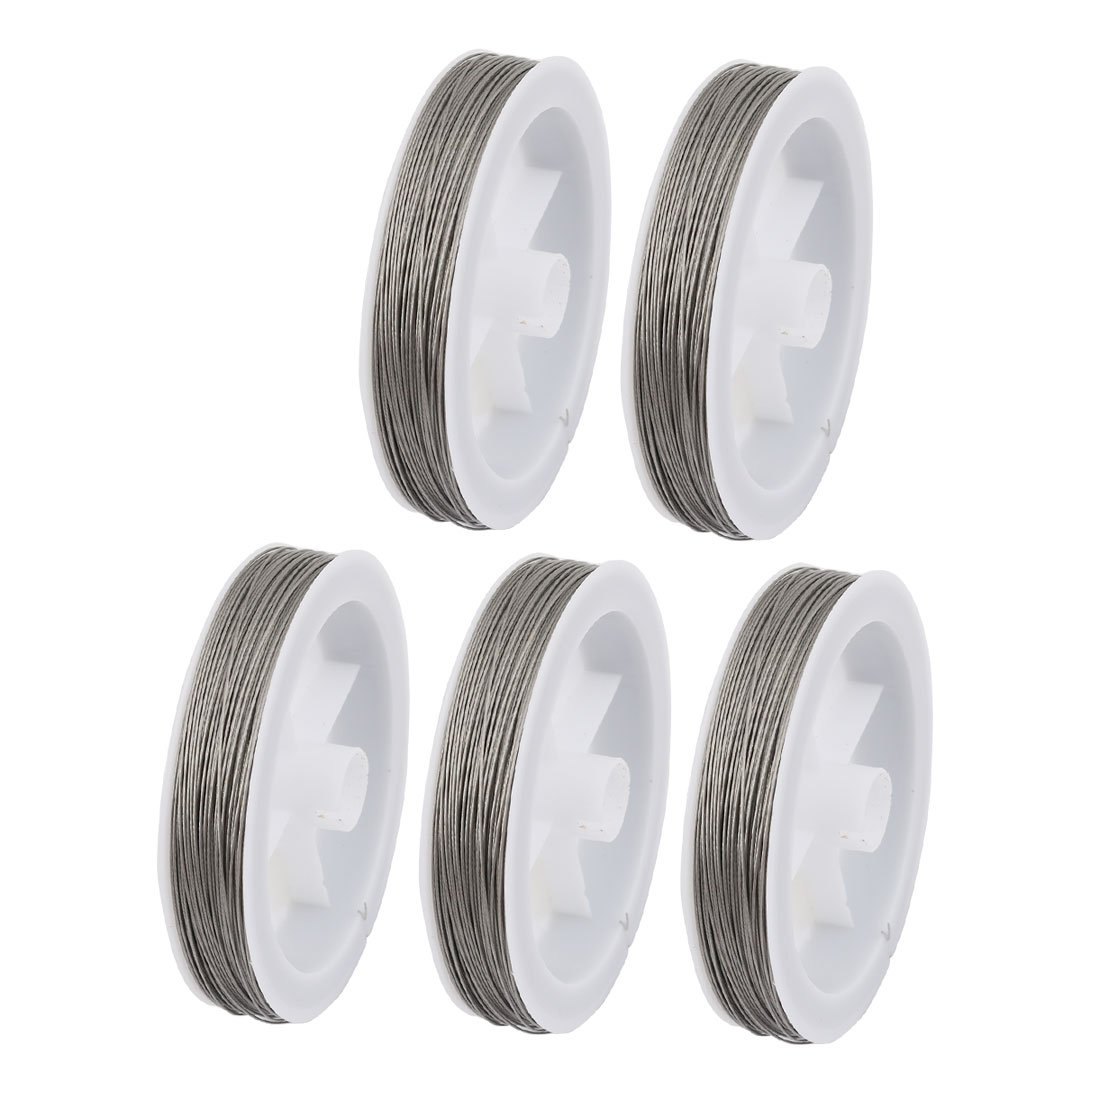 uxcell 5pcs 0.6mm Diameter 100 Meters Long Steel Wire Light Accessory for Crystal Bead